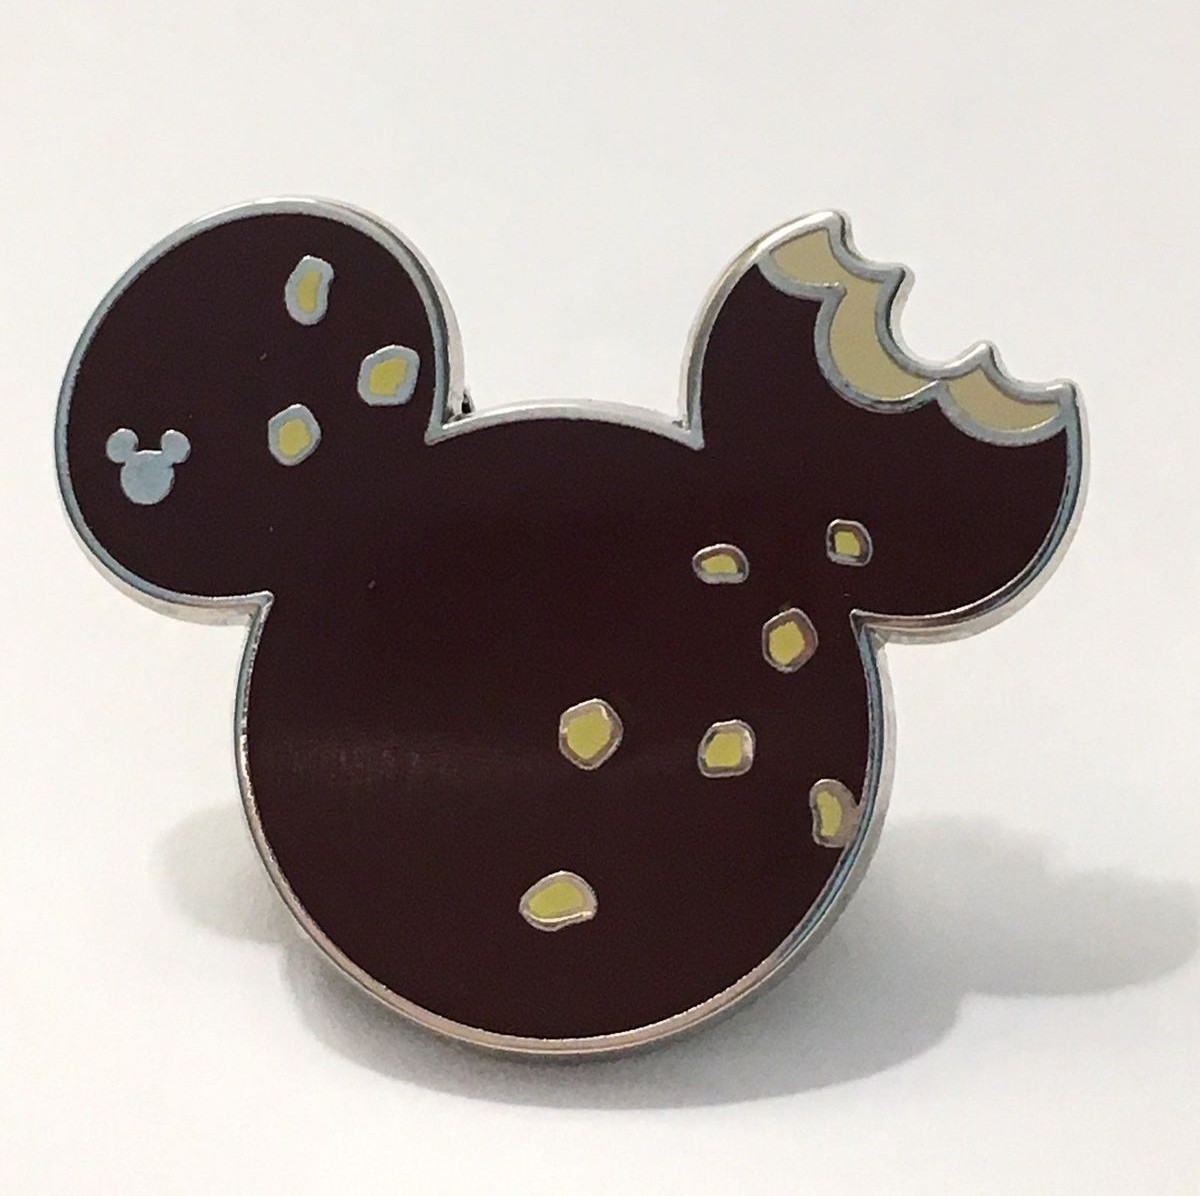 402673ddf568 18979 - DLR - 2015 Hidden Mickey Series - Mickey Mouse Food Icons - Ice  Cream Completer